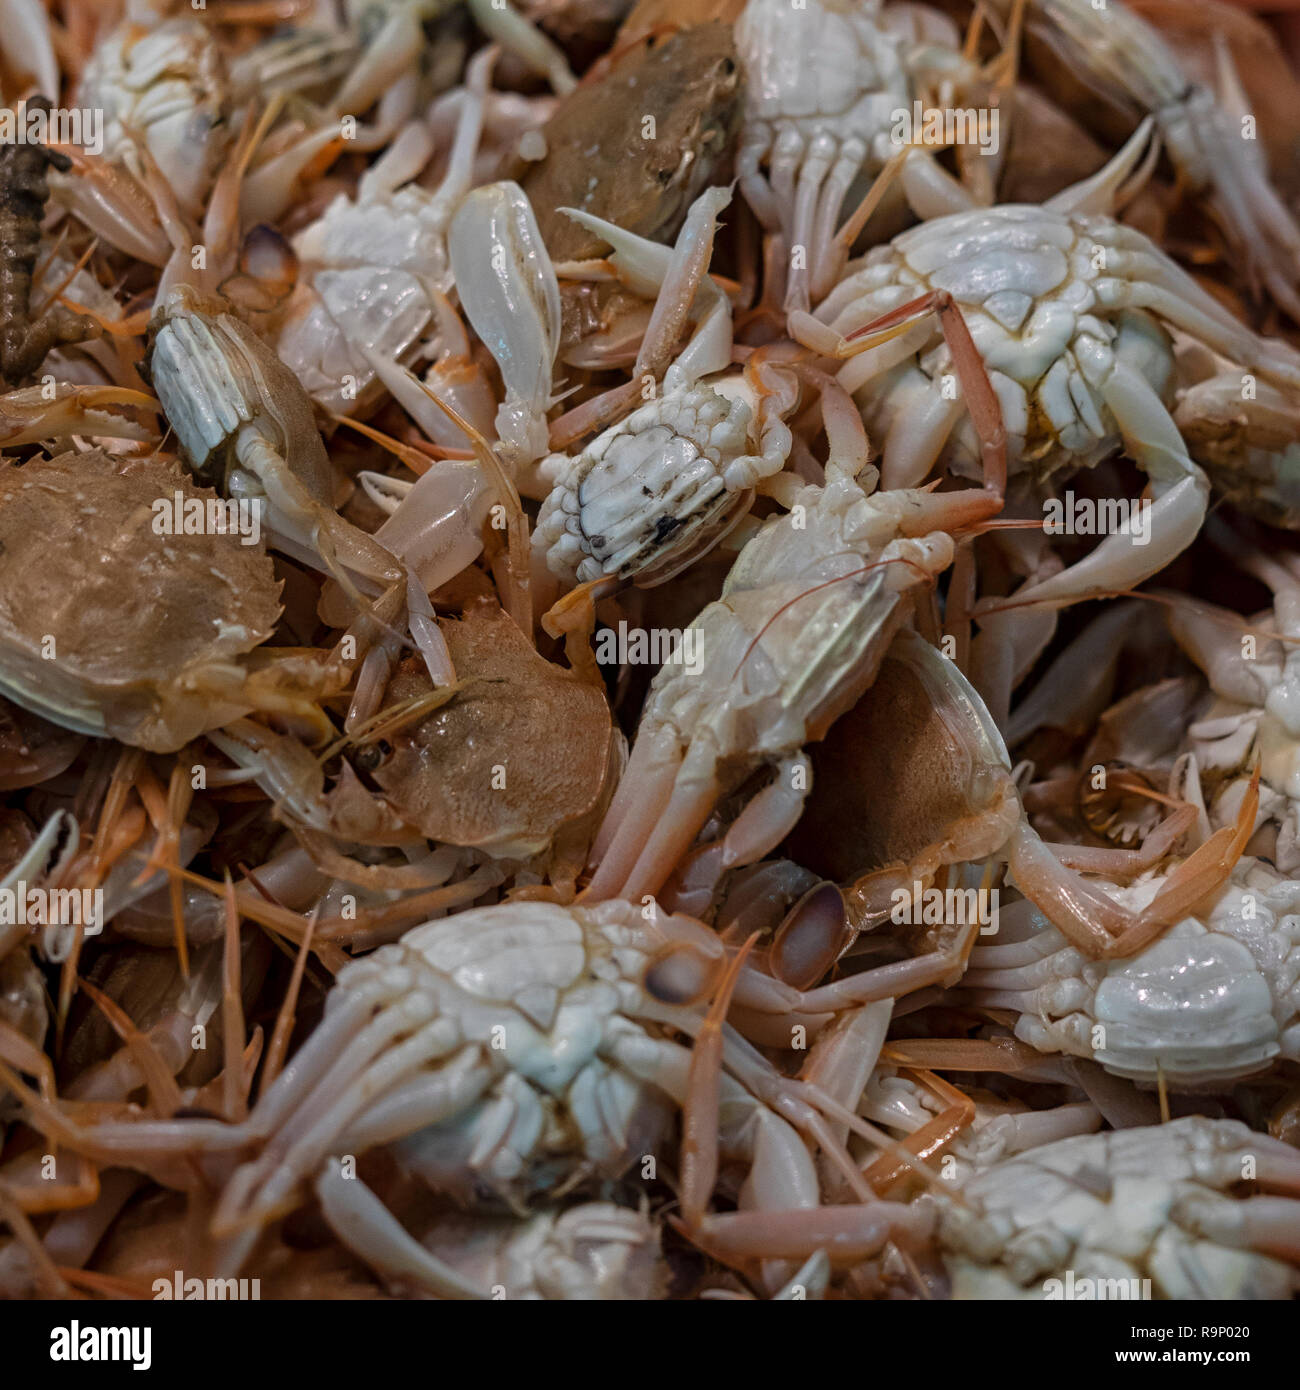 Crabs For Sale Stock Photos & Crabs For Sale Stock Images - Alamy